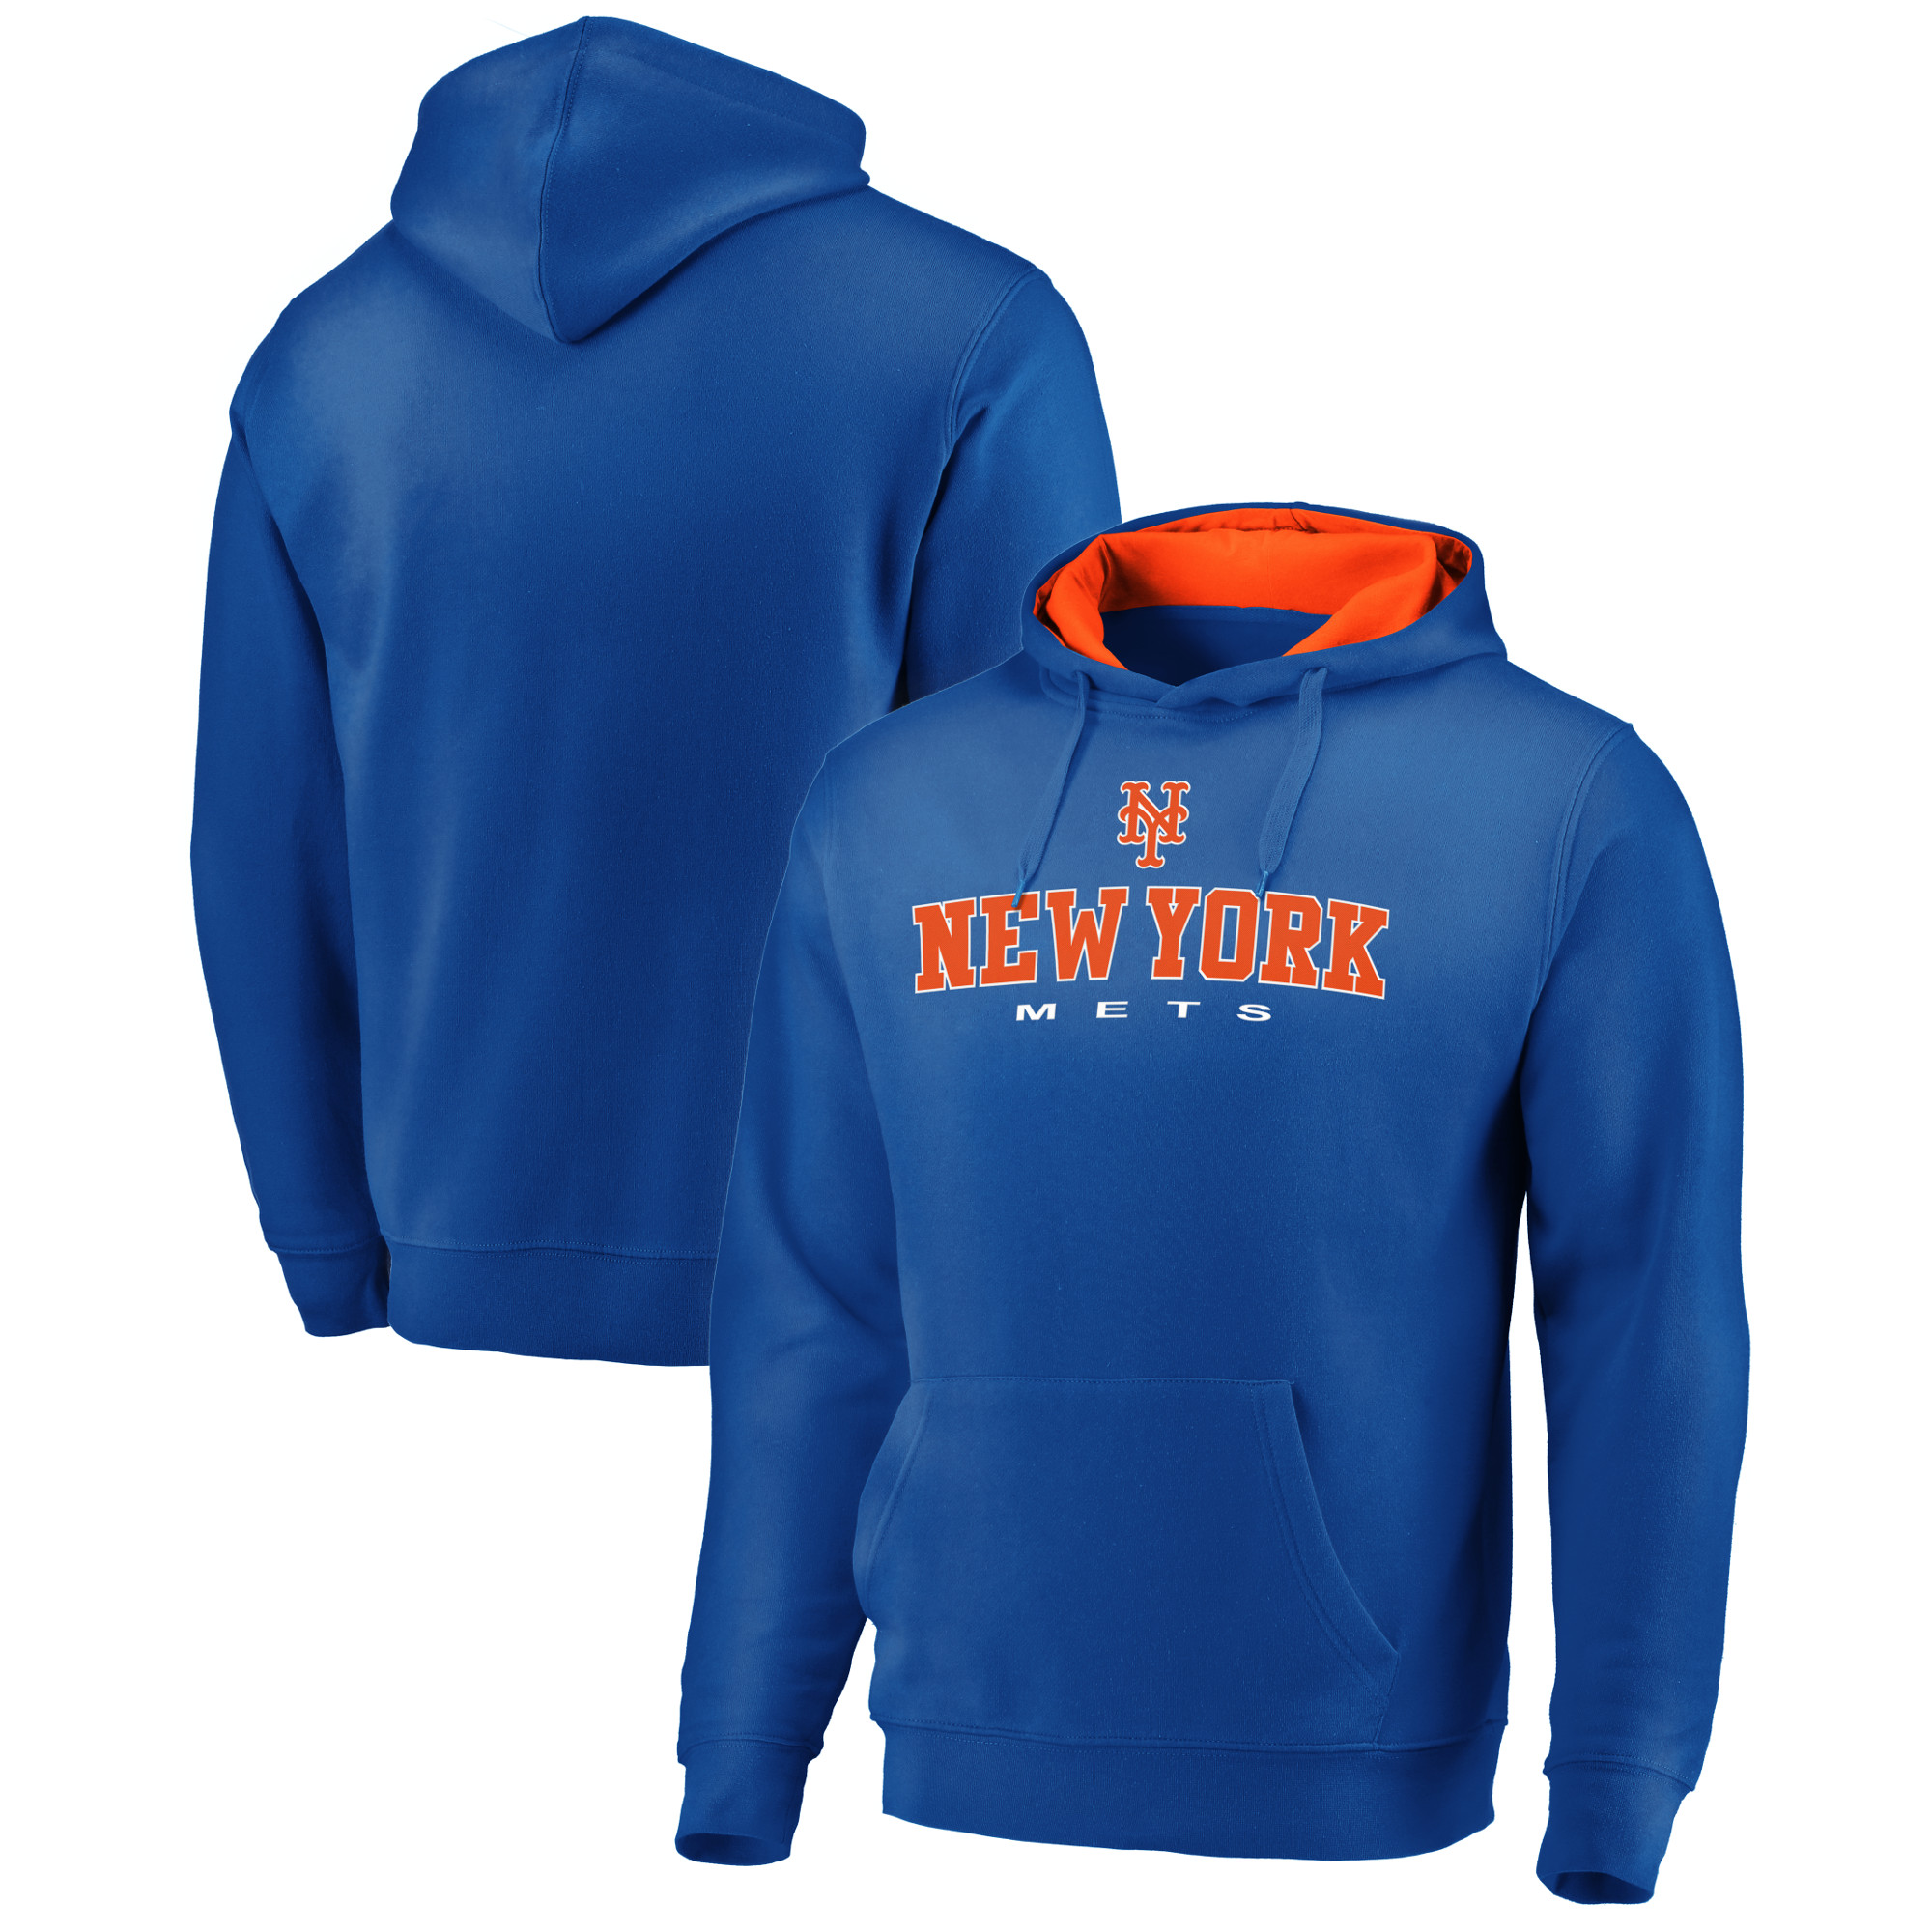 New York Mets Fanatics Branded Big & Tall Block Lineup Zone Fleece Pullover Hoodie - Royal